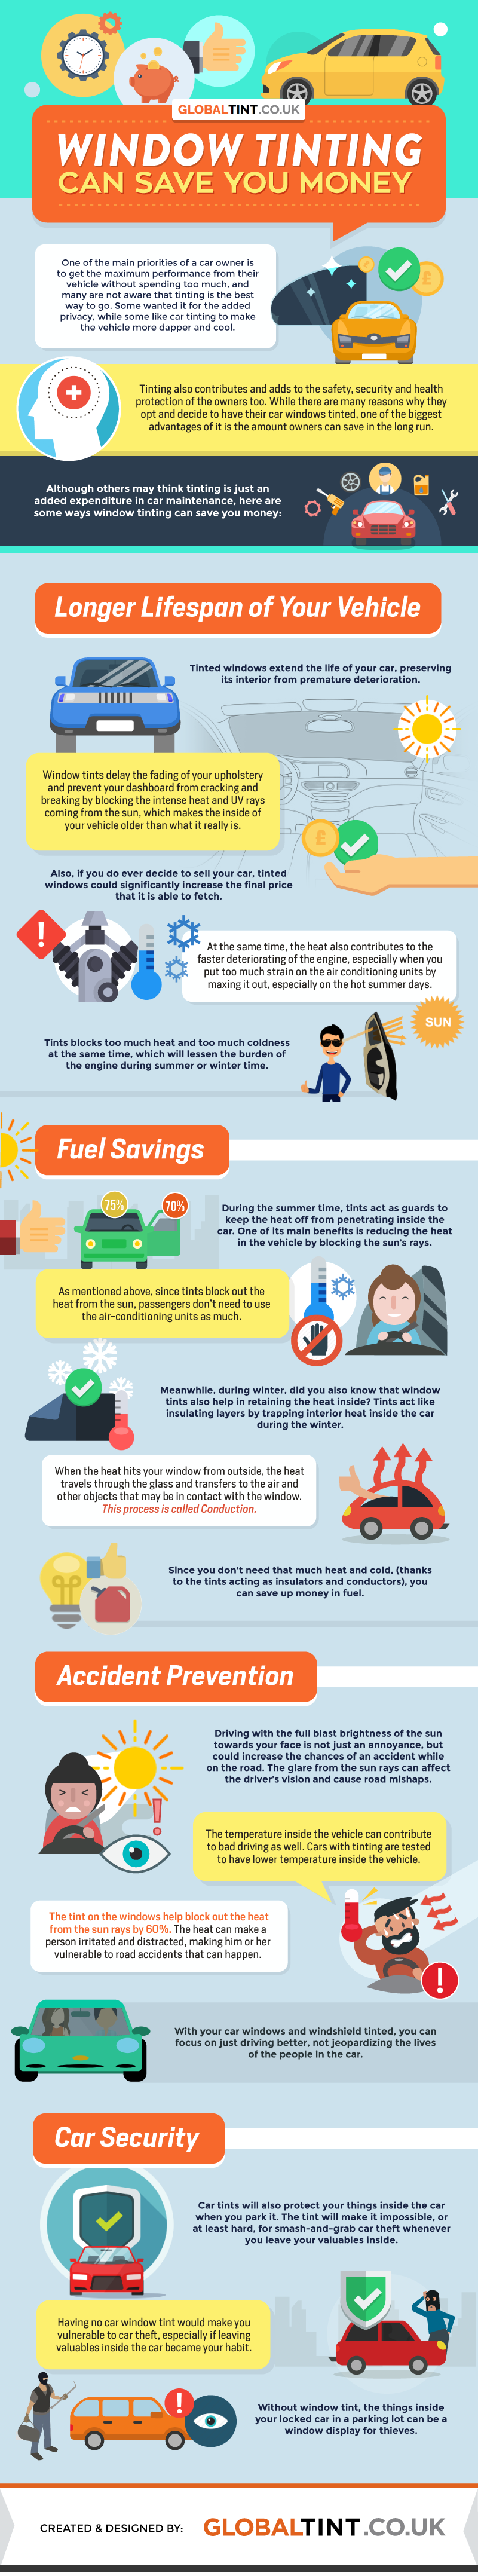 Window Tinting Can Save You Money Infographic Global